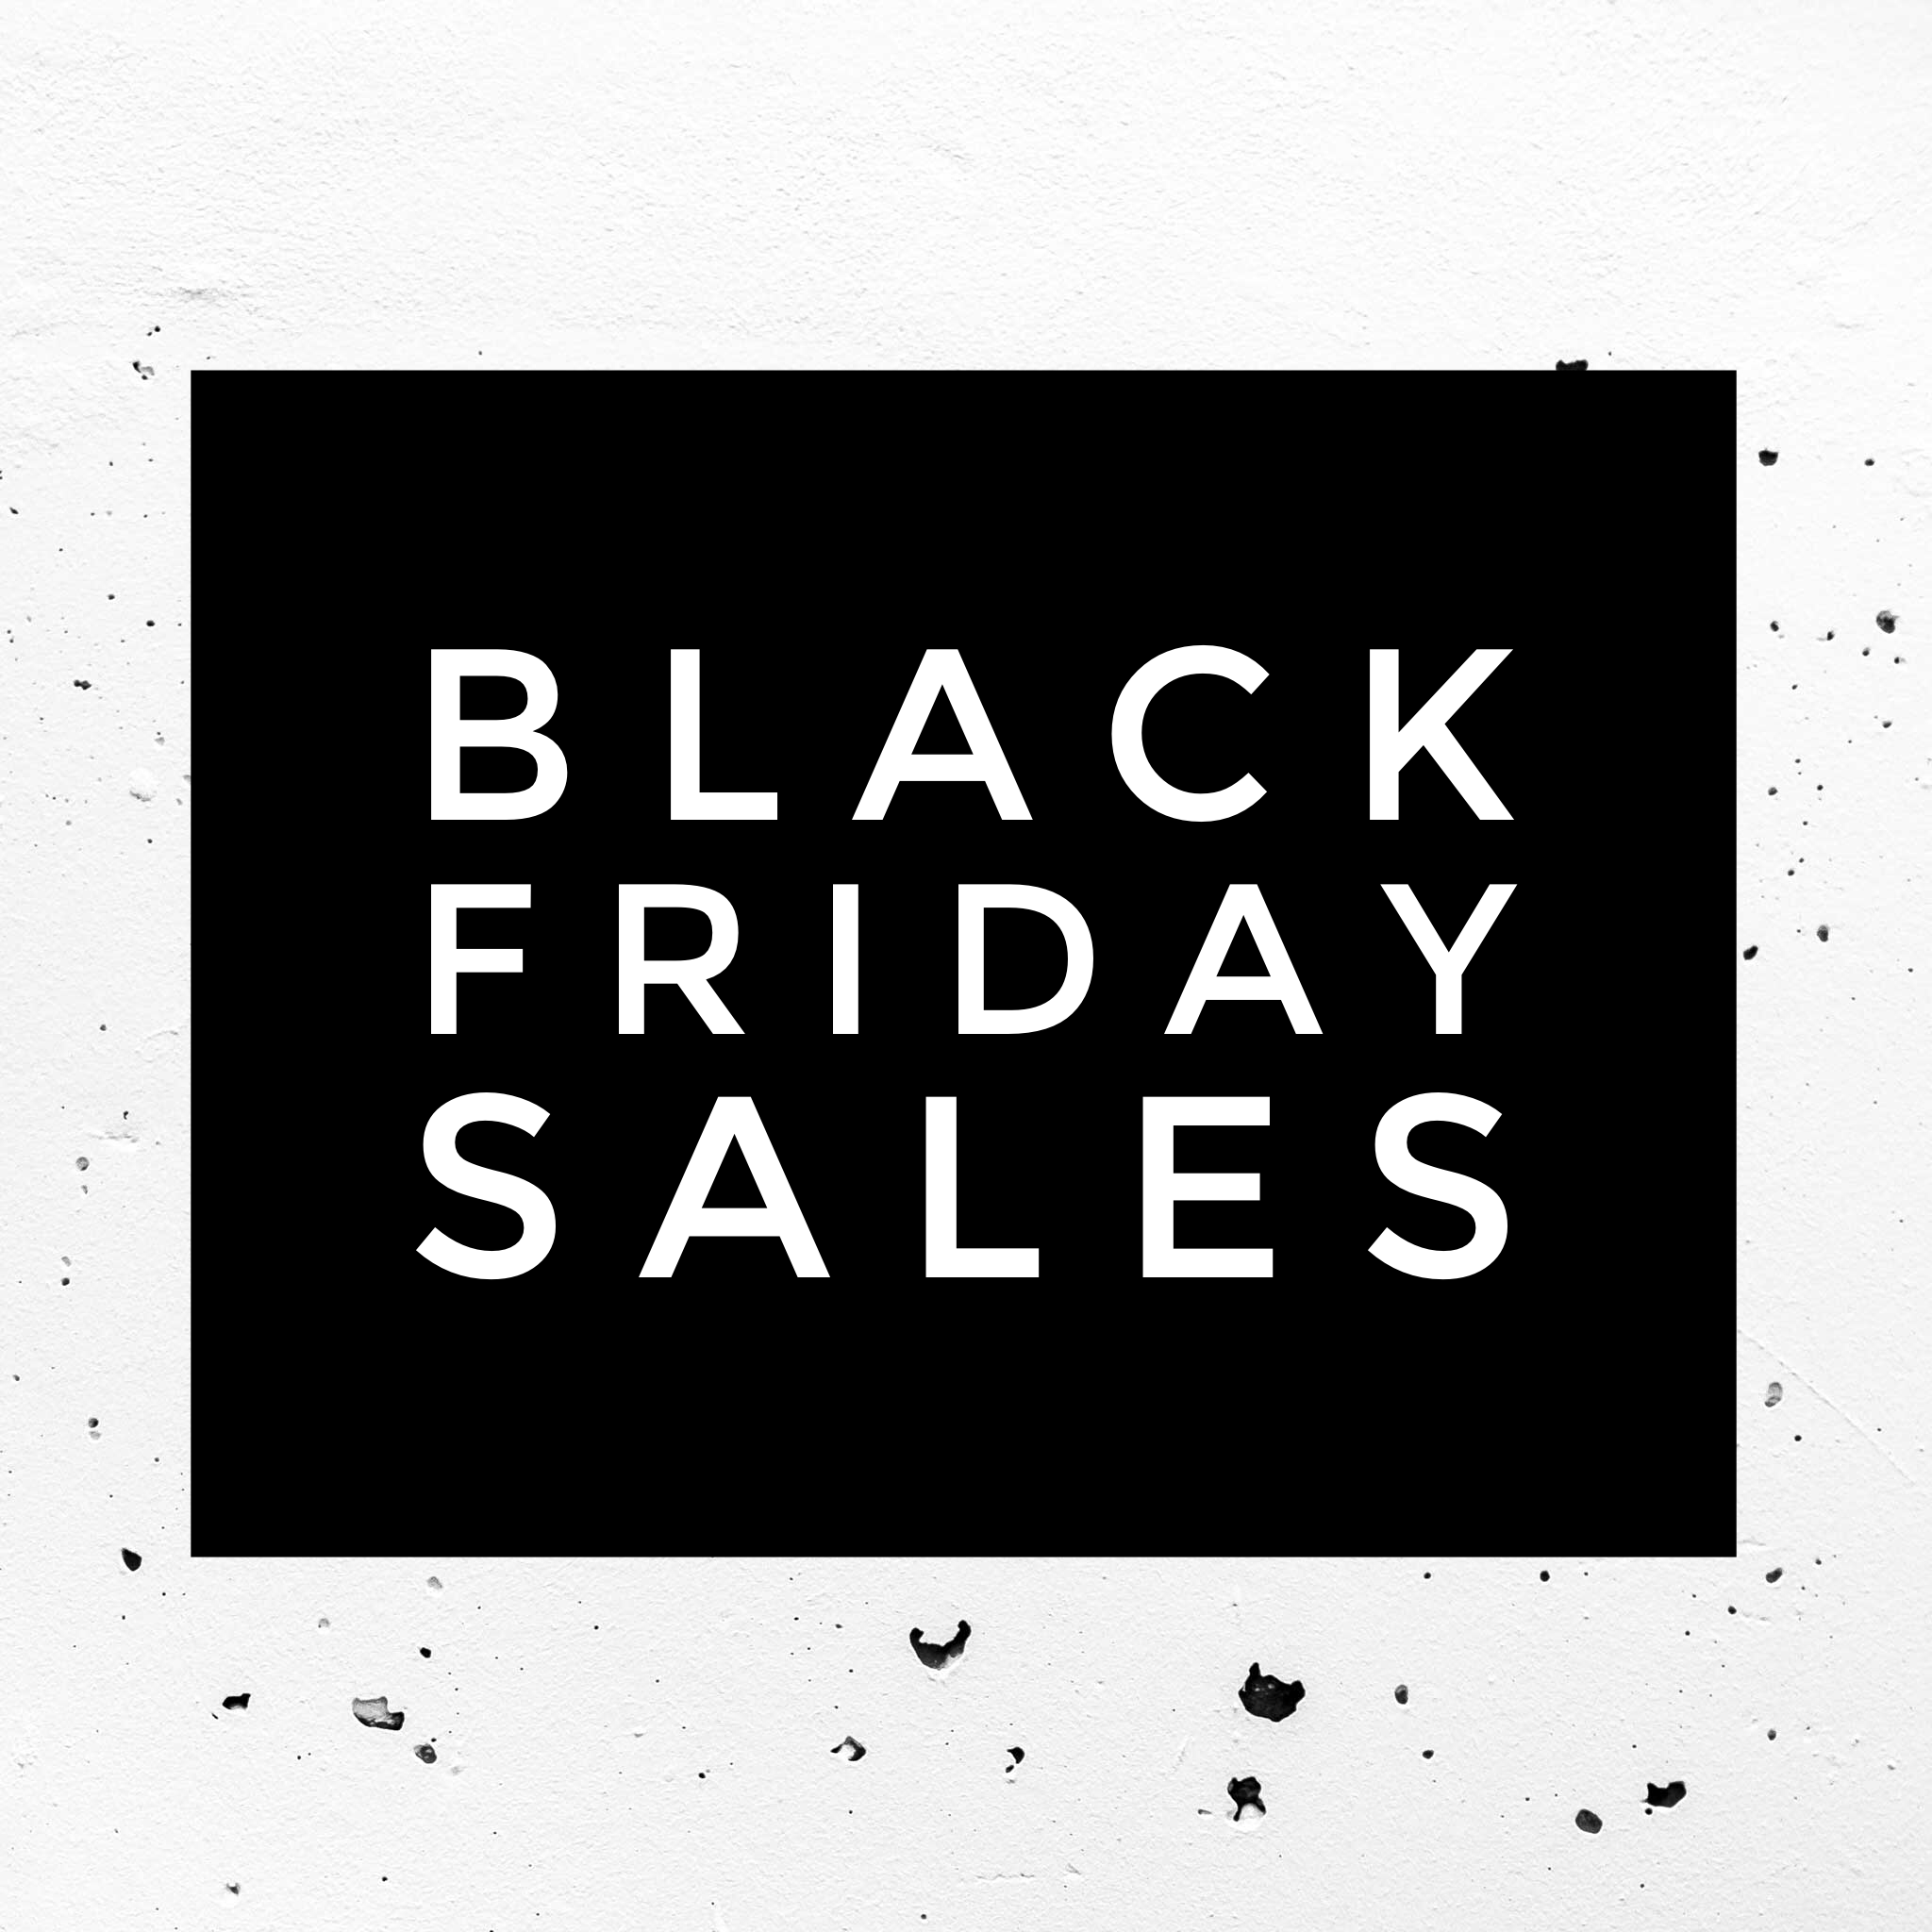 Black Friday Deals are here! Shop in-store and online NOW!